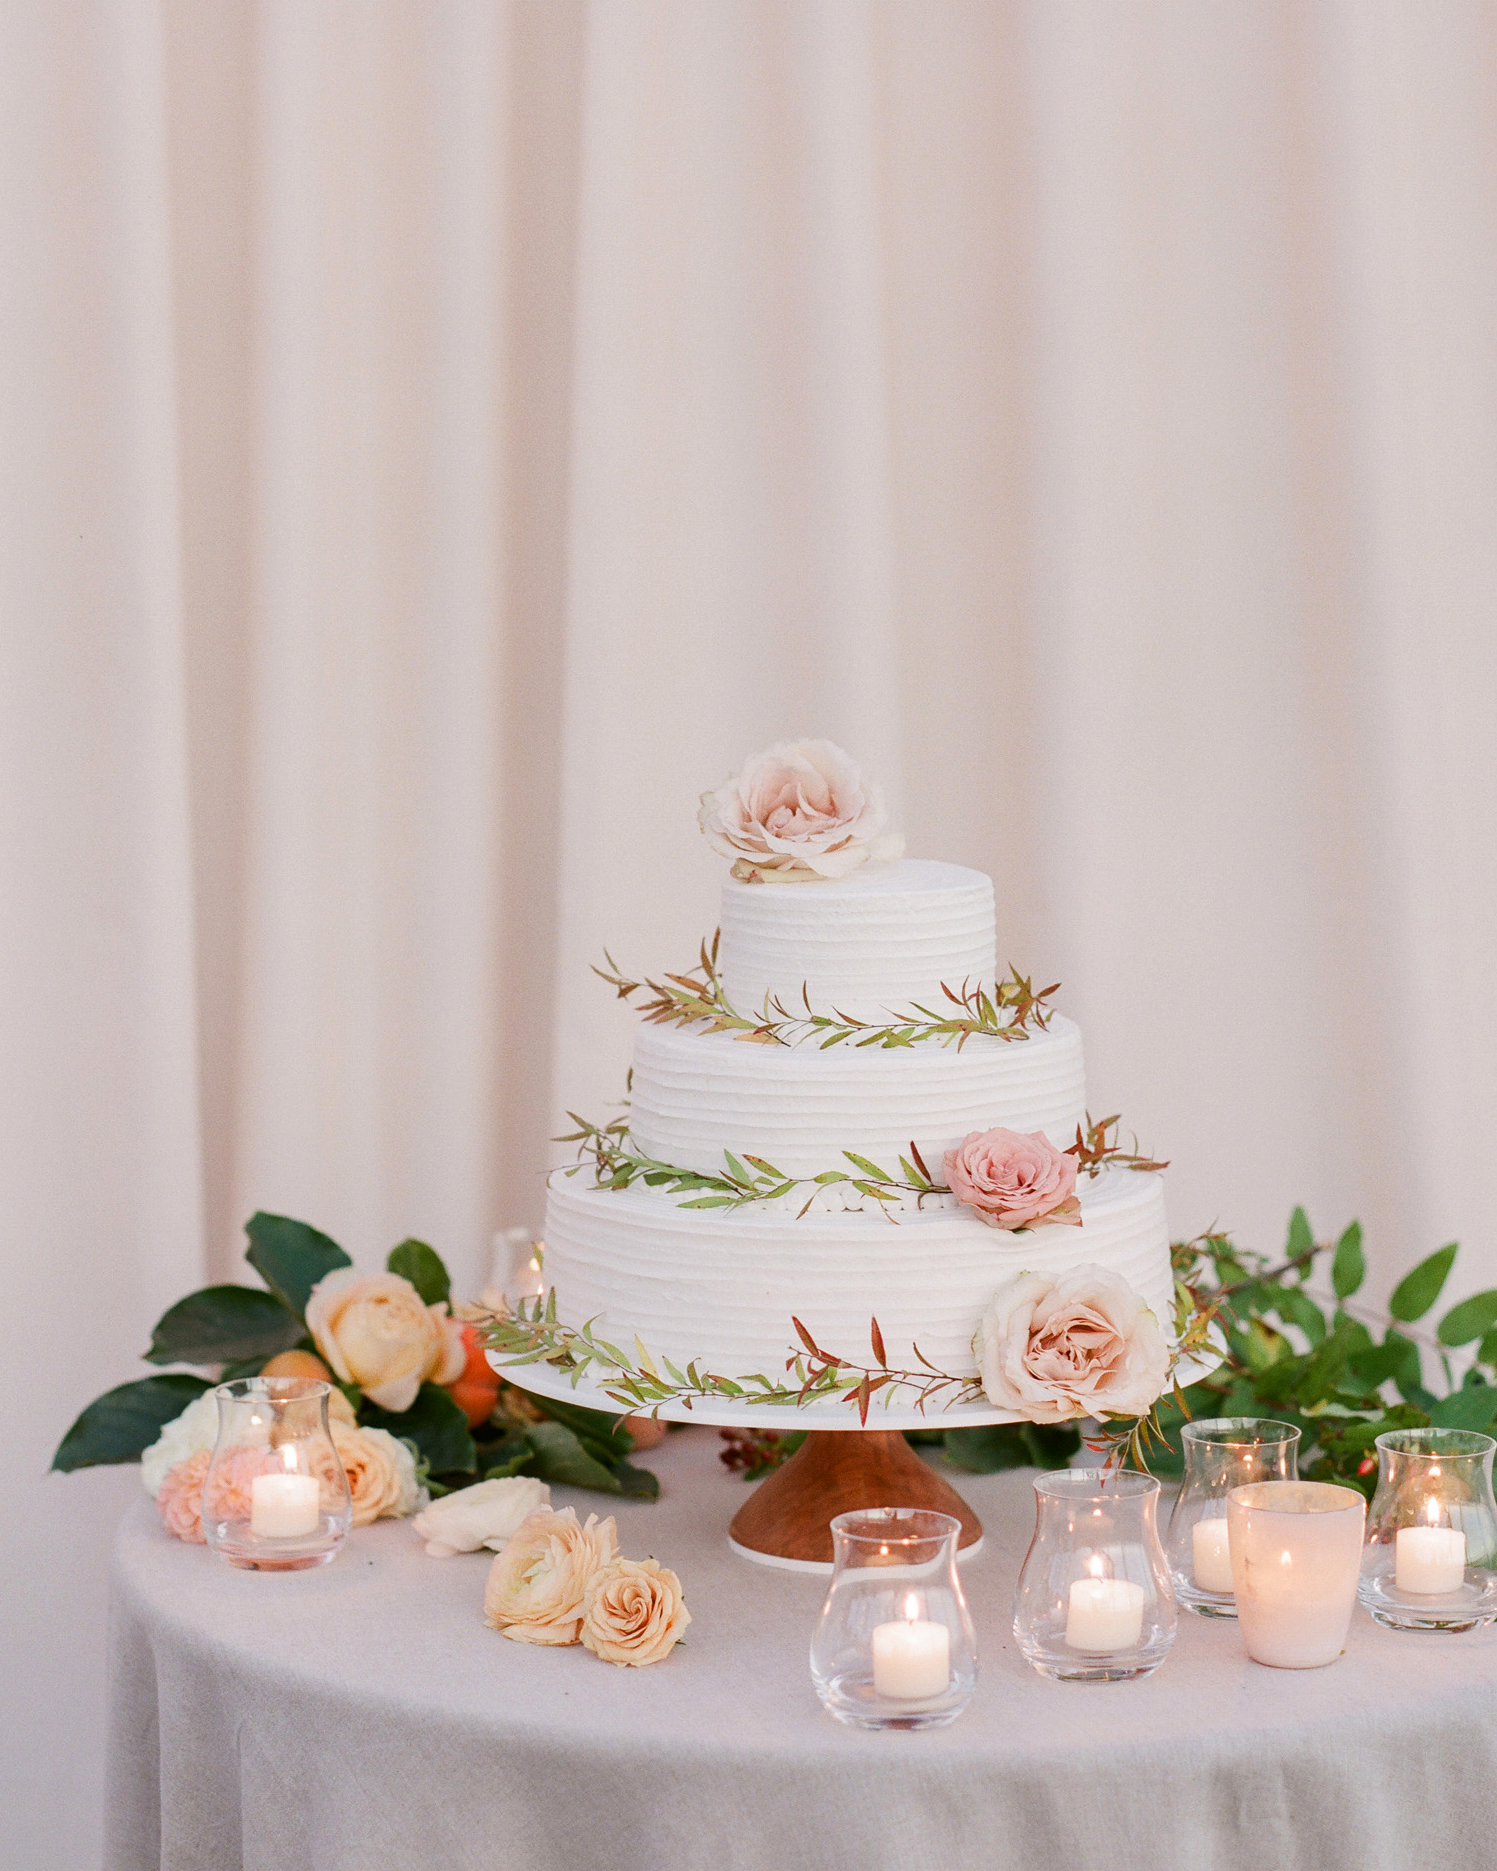 kathryn ian wedding cake